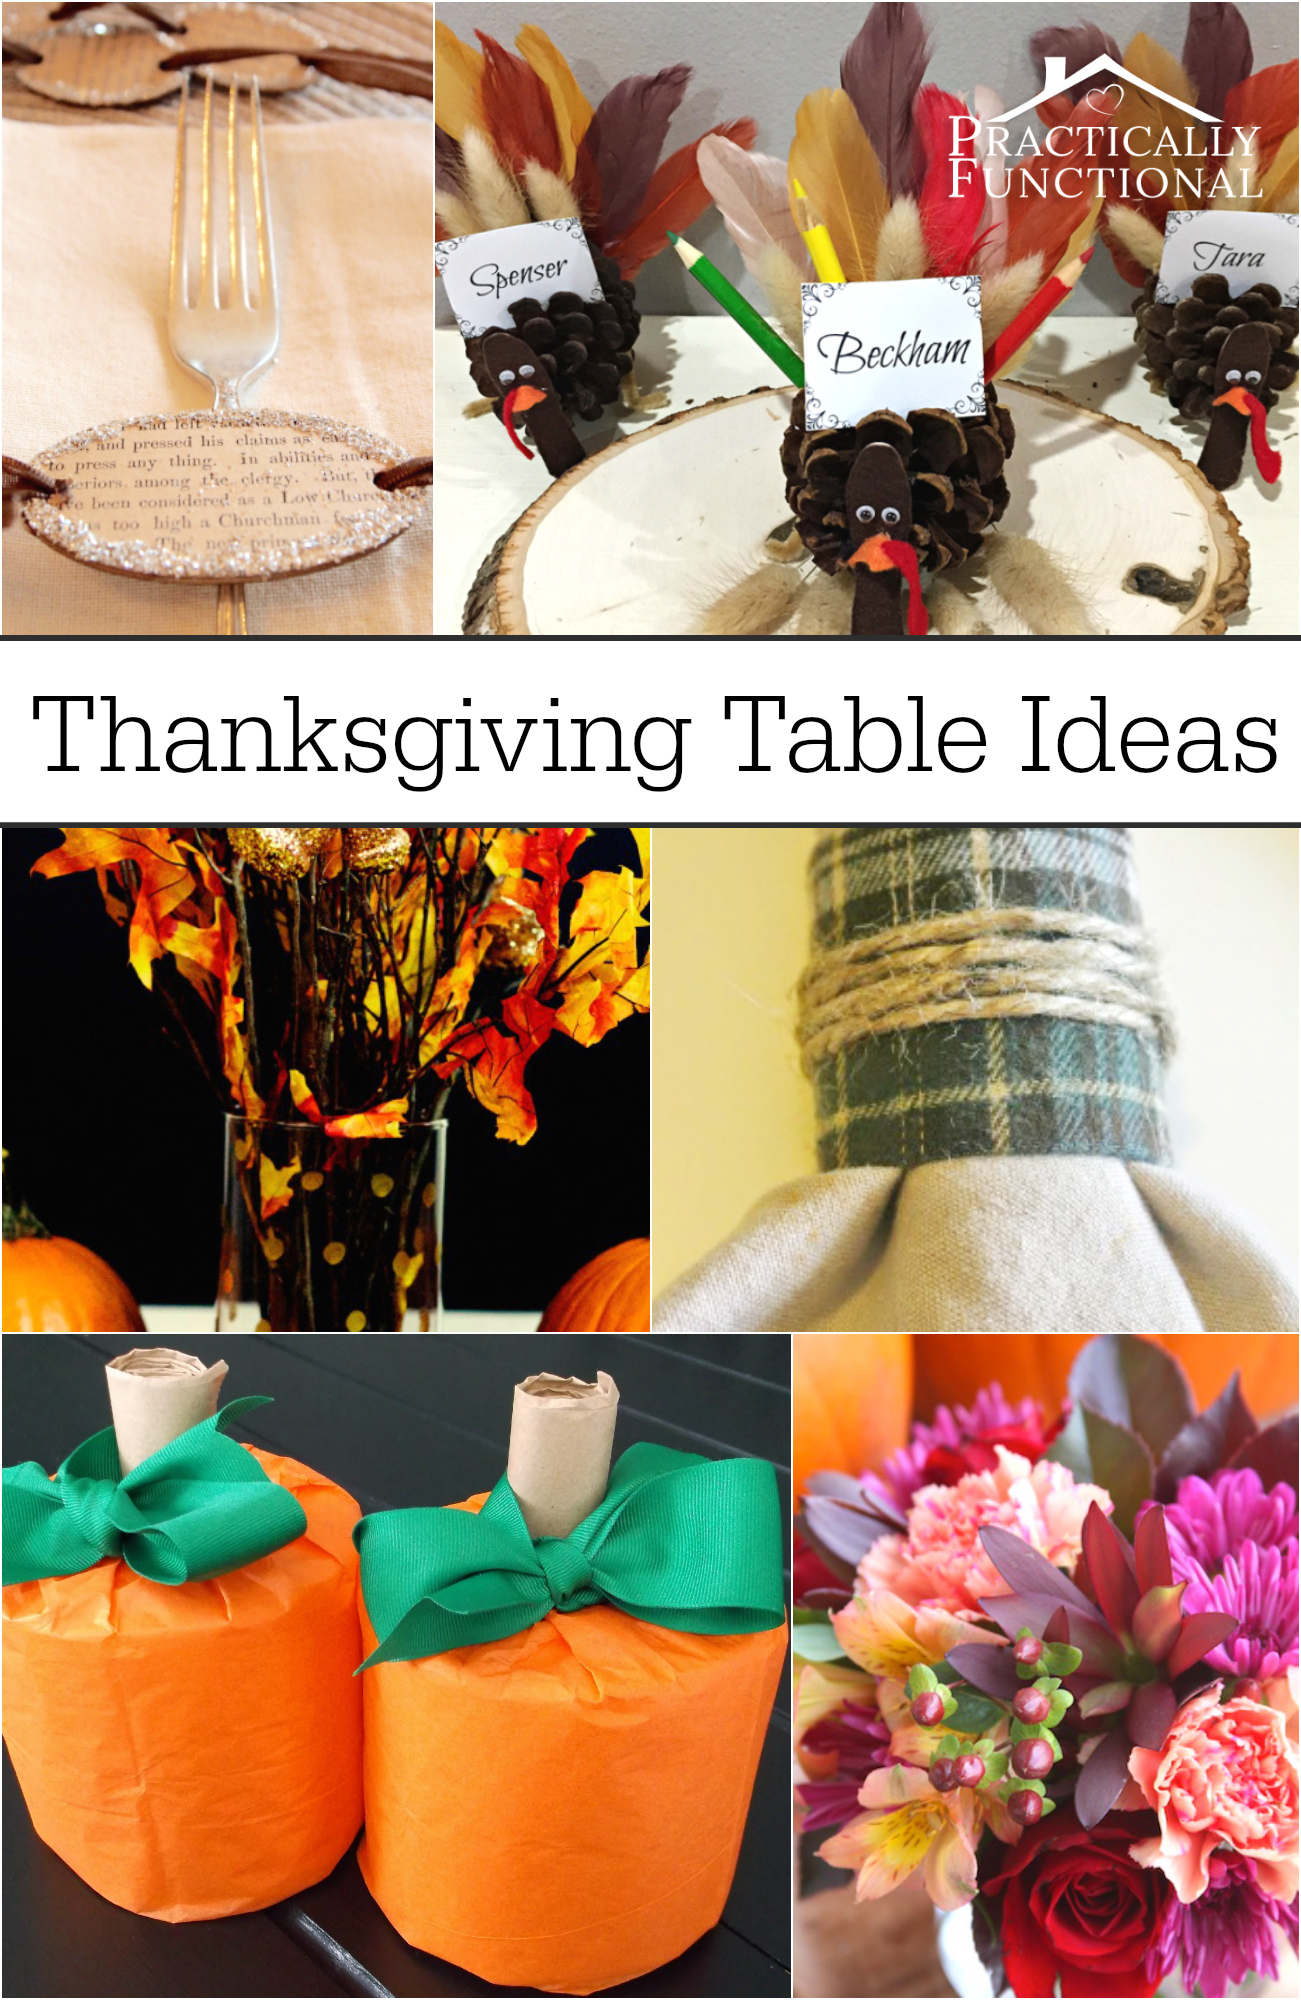 If you host Thanksgiving dinner, these Thanksgiving table decoration ideas are perfect for you!